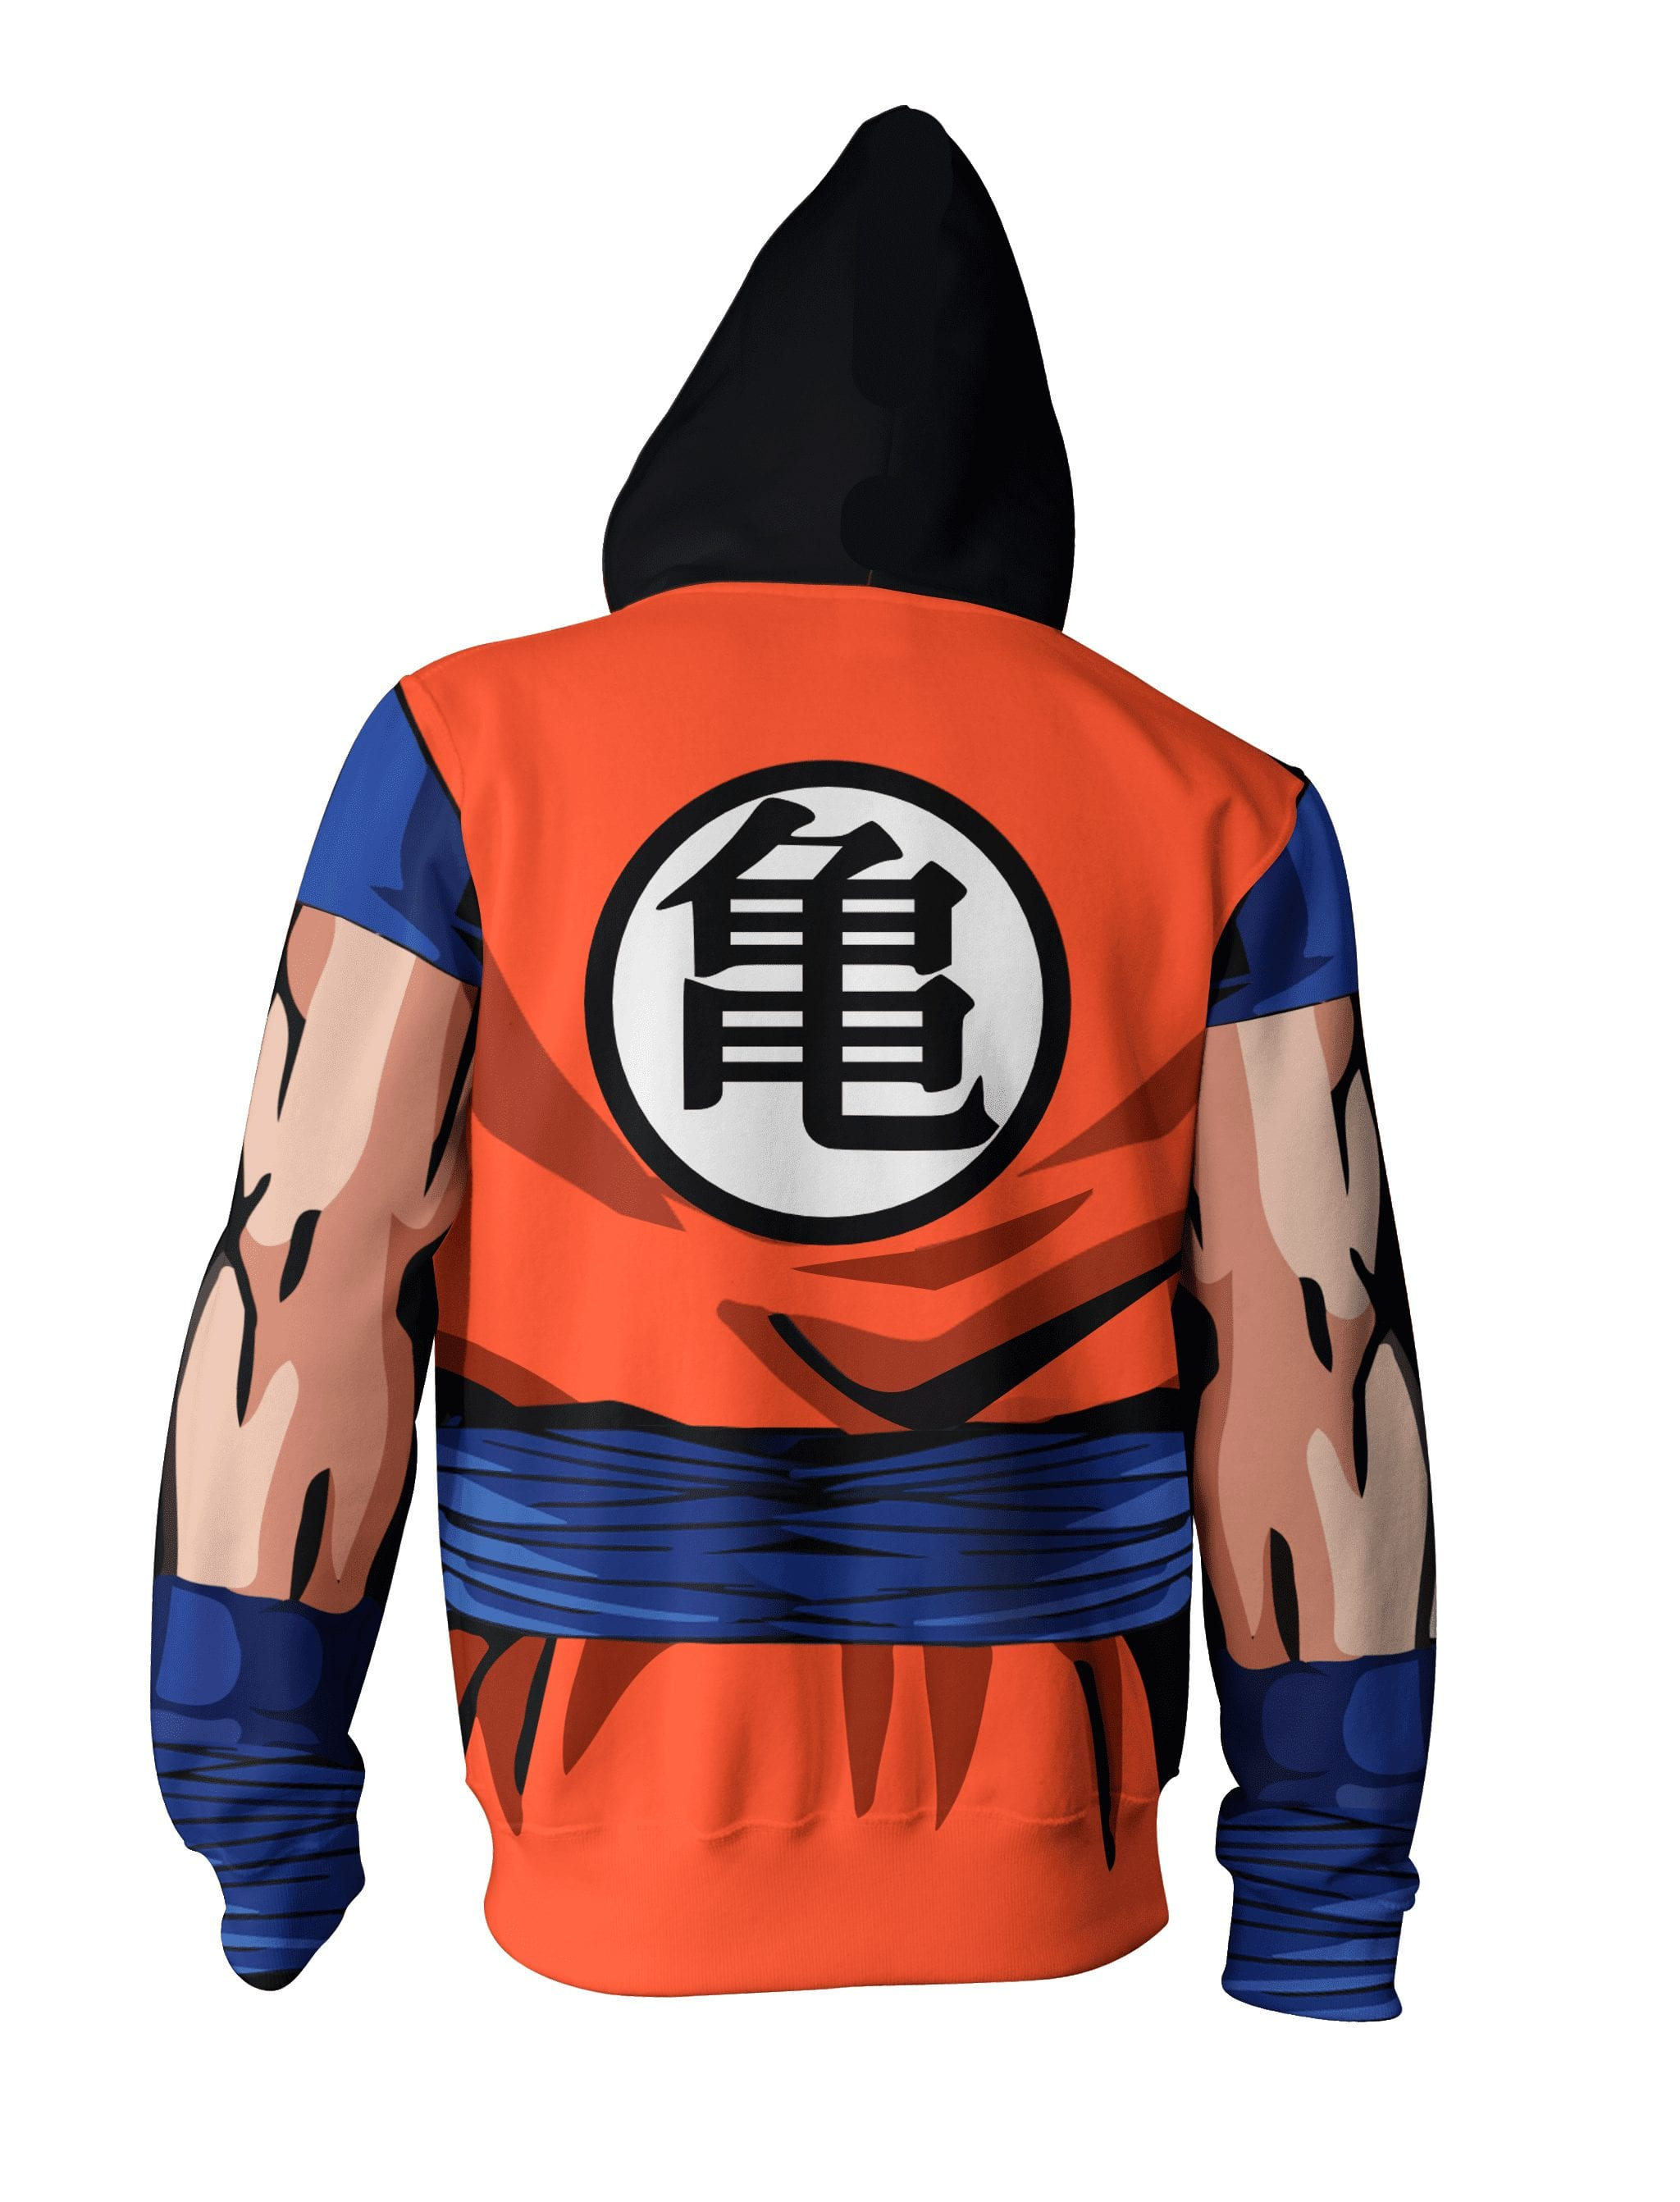 Dragon Ball Z Cool Master Roshi Buffed Orange Uniform Zip Up Hoodie